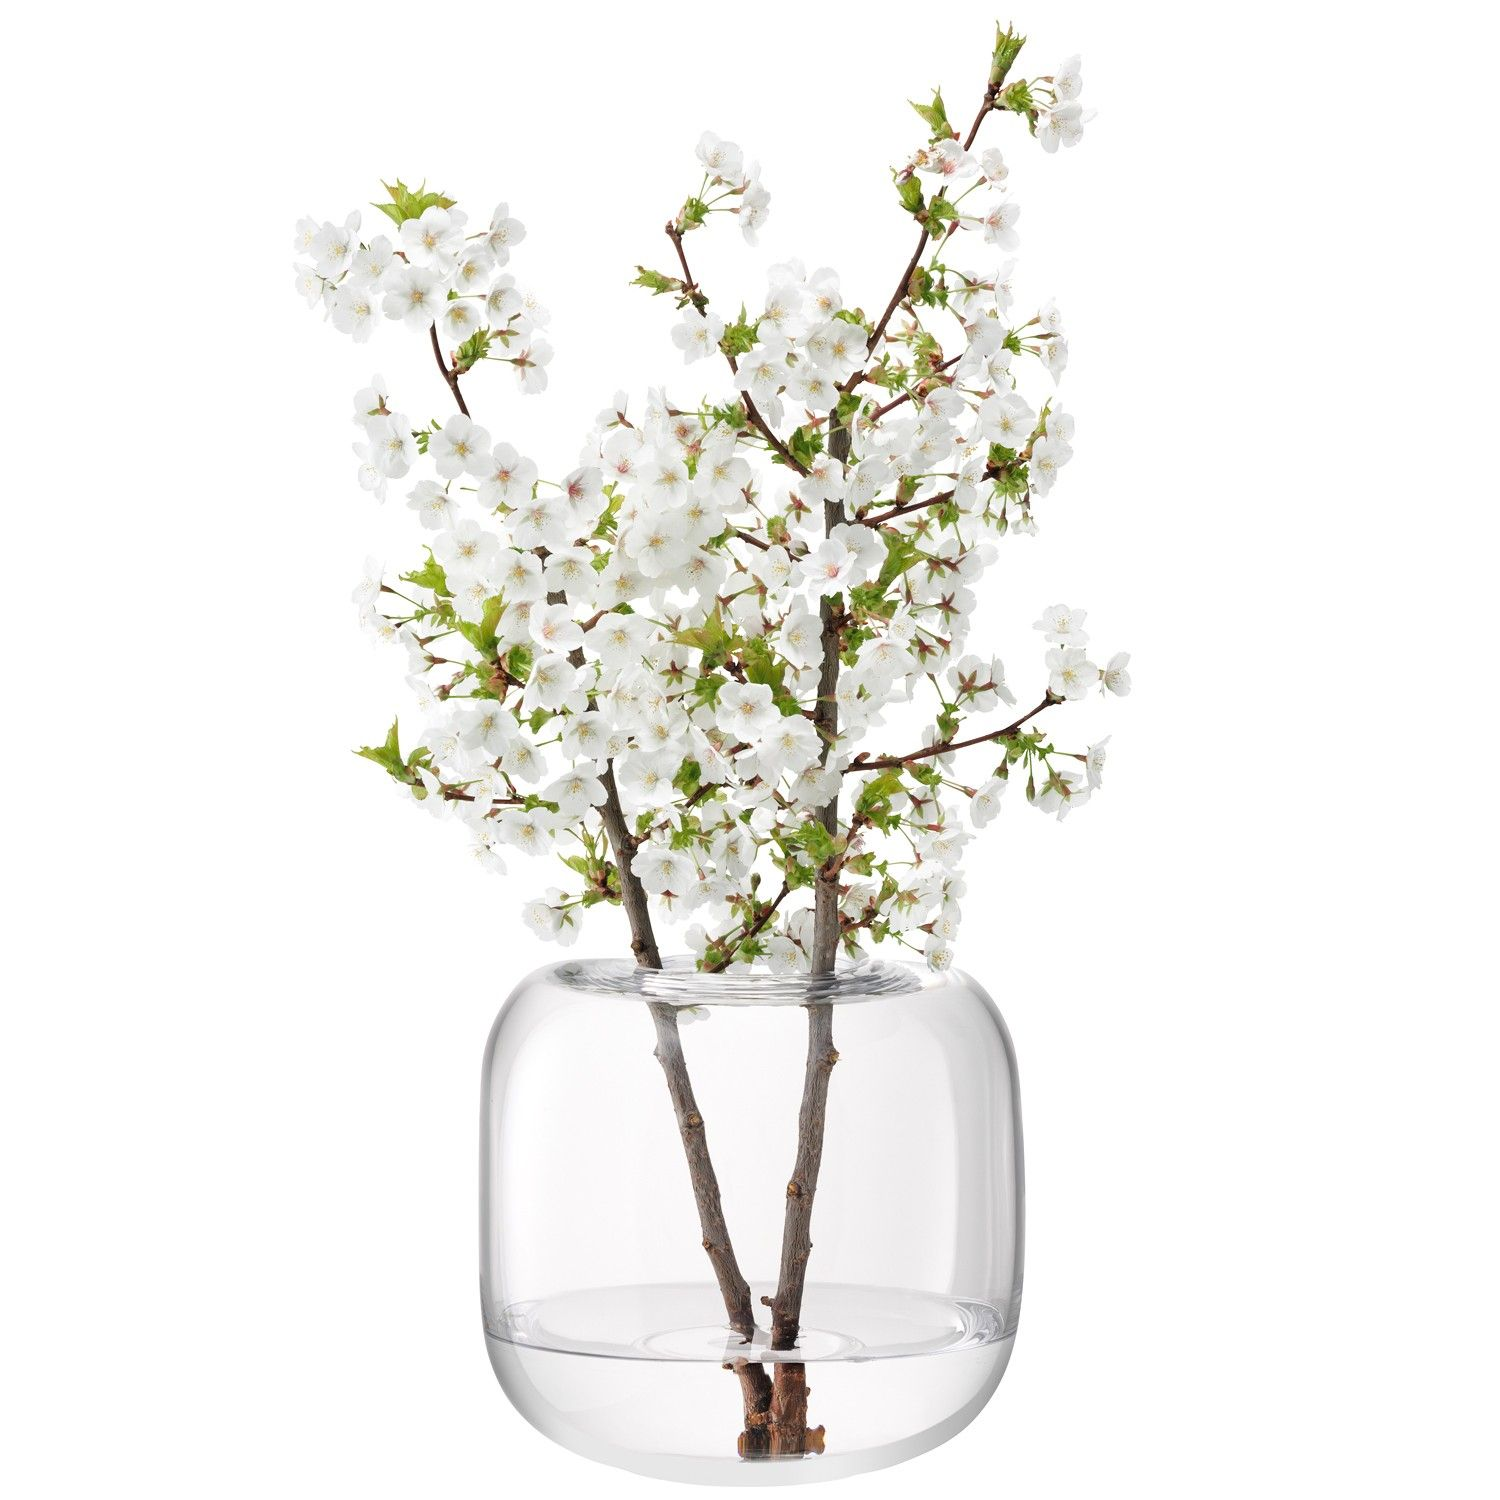 Kitchen lsa international simple clear vase in soft cube shape kitchen lsa international simple clear vase in soft cube shape would pair nicely with reviewsmspy